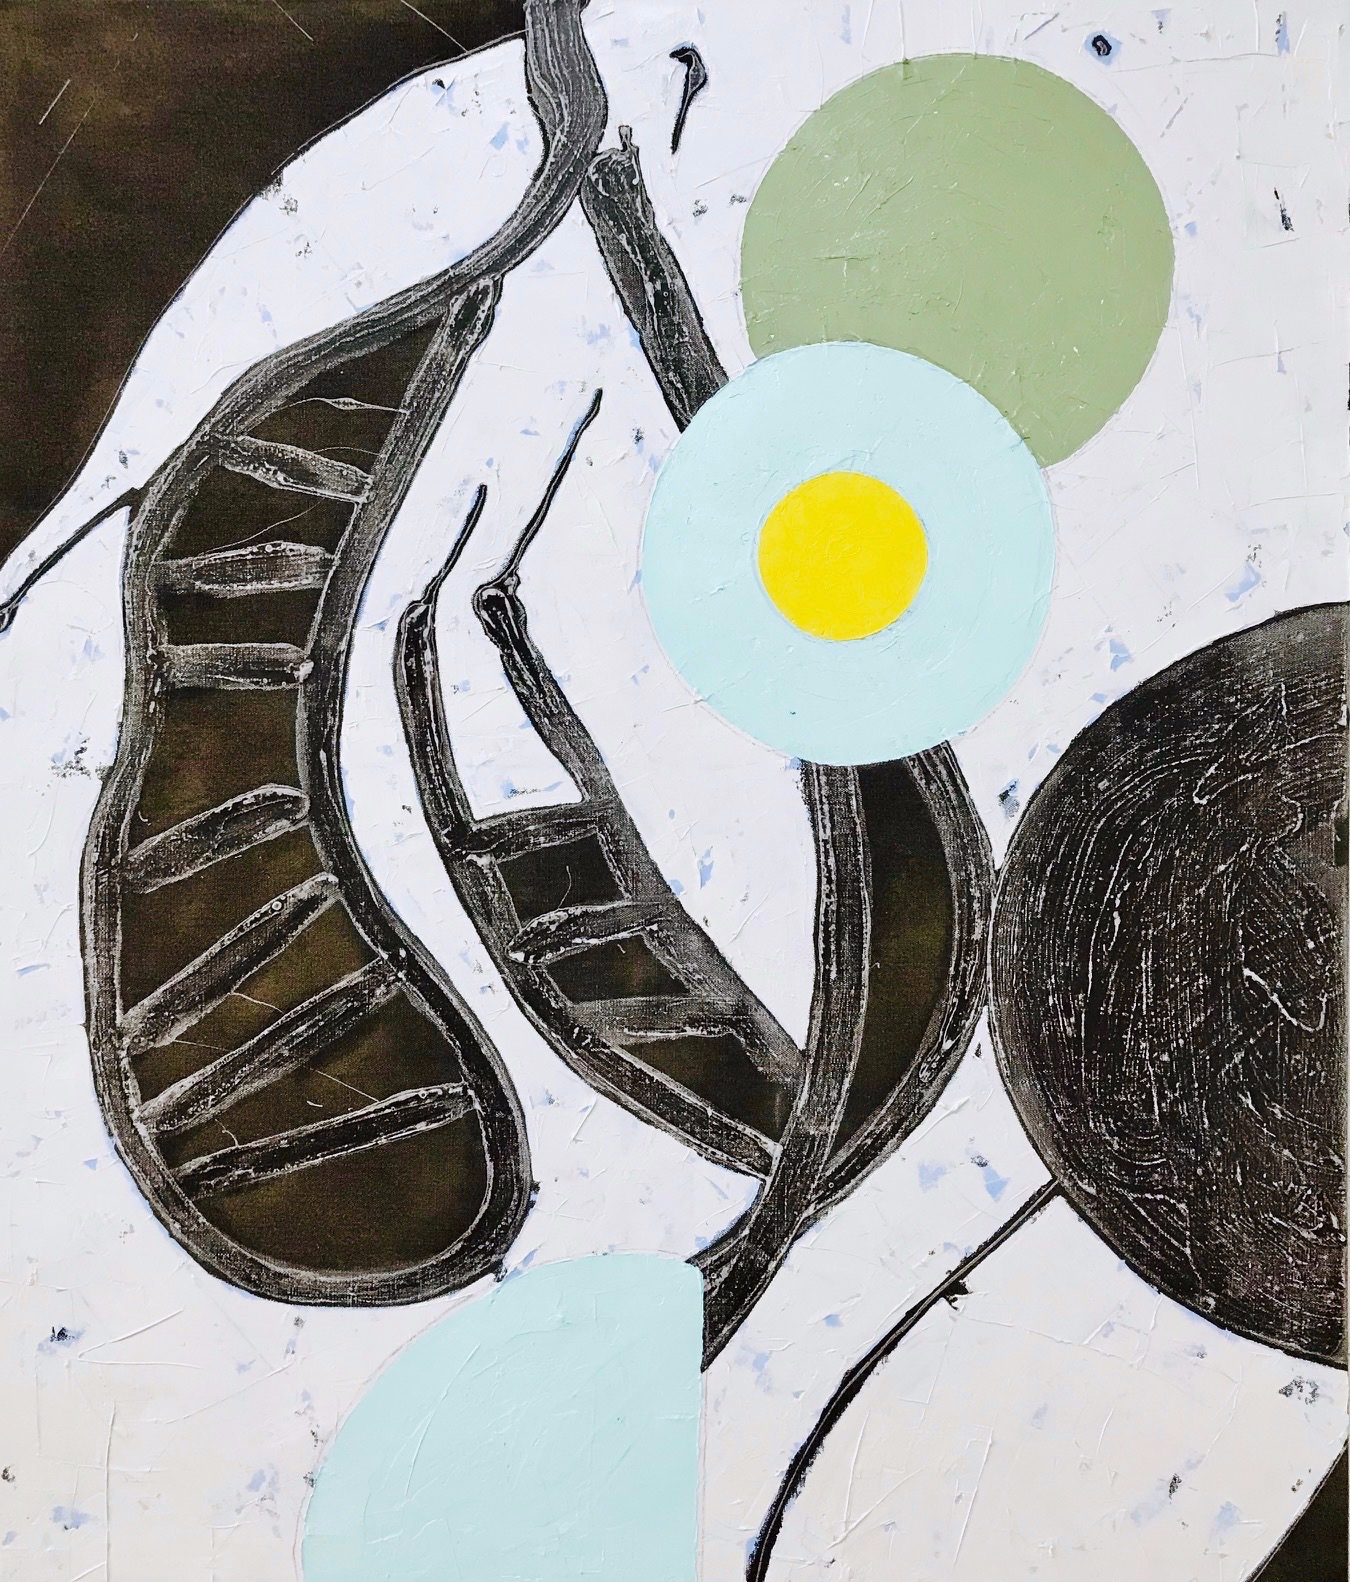 PETER SHARP  White Mallee Flower , 2018 oil and acrylic on linen 152 x 130 cm